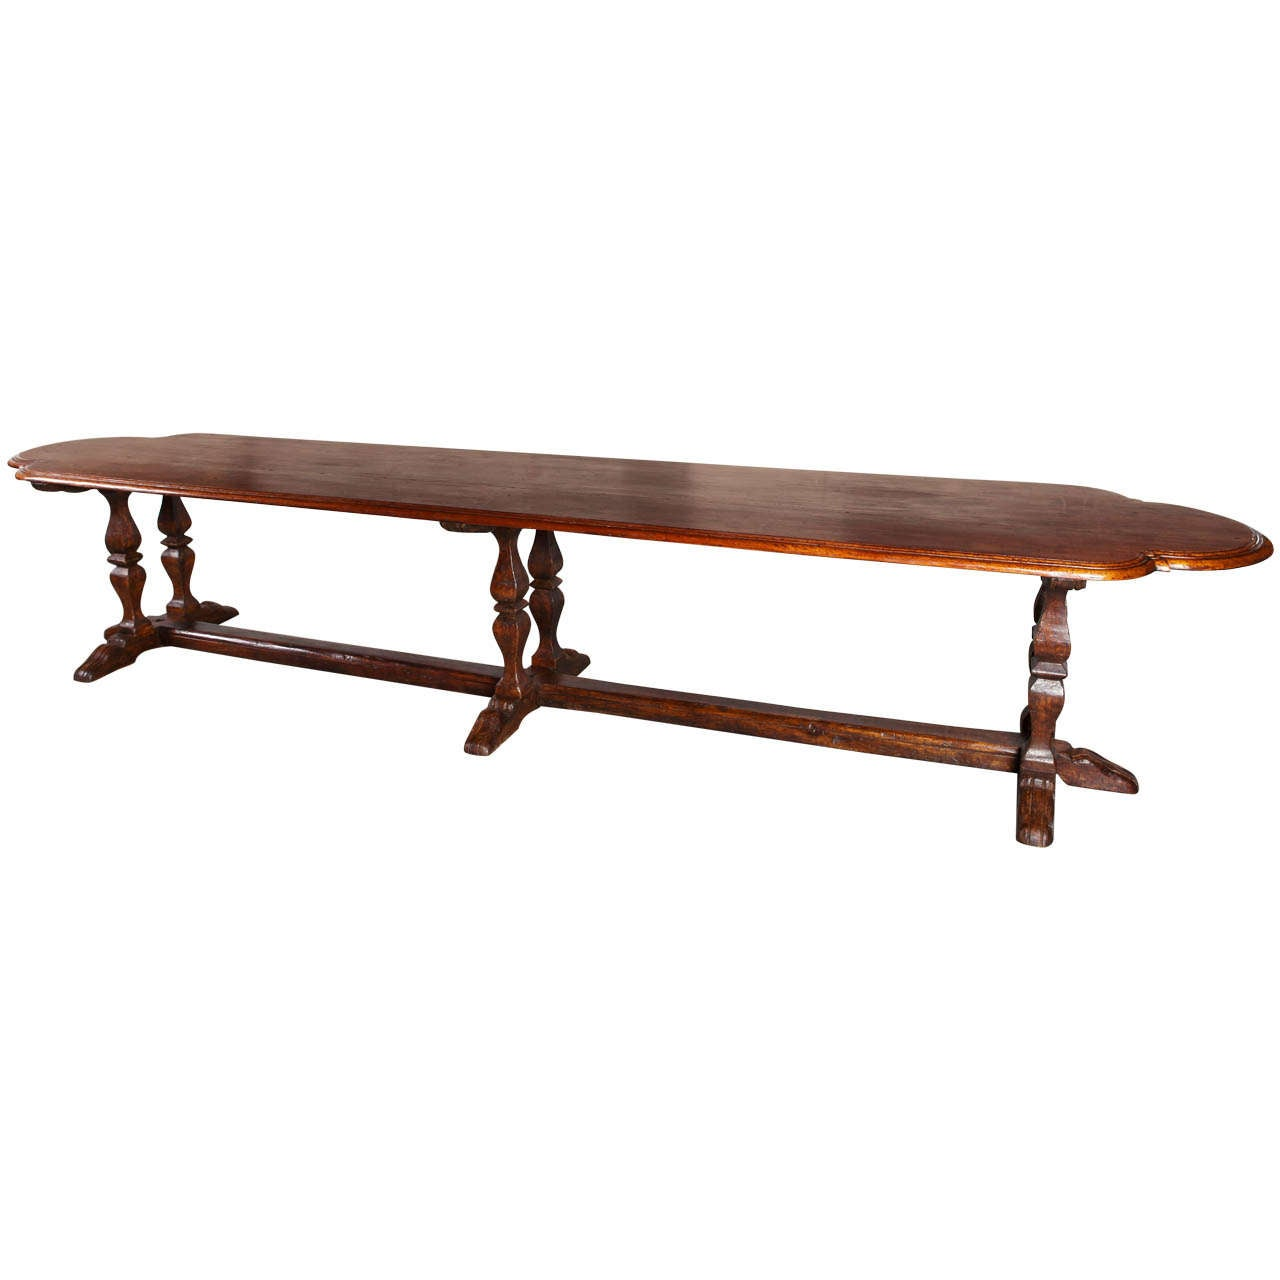 Italian Dining Tables Antique Italian Dining Table From Florence 19th Century At 1stdibs